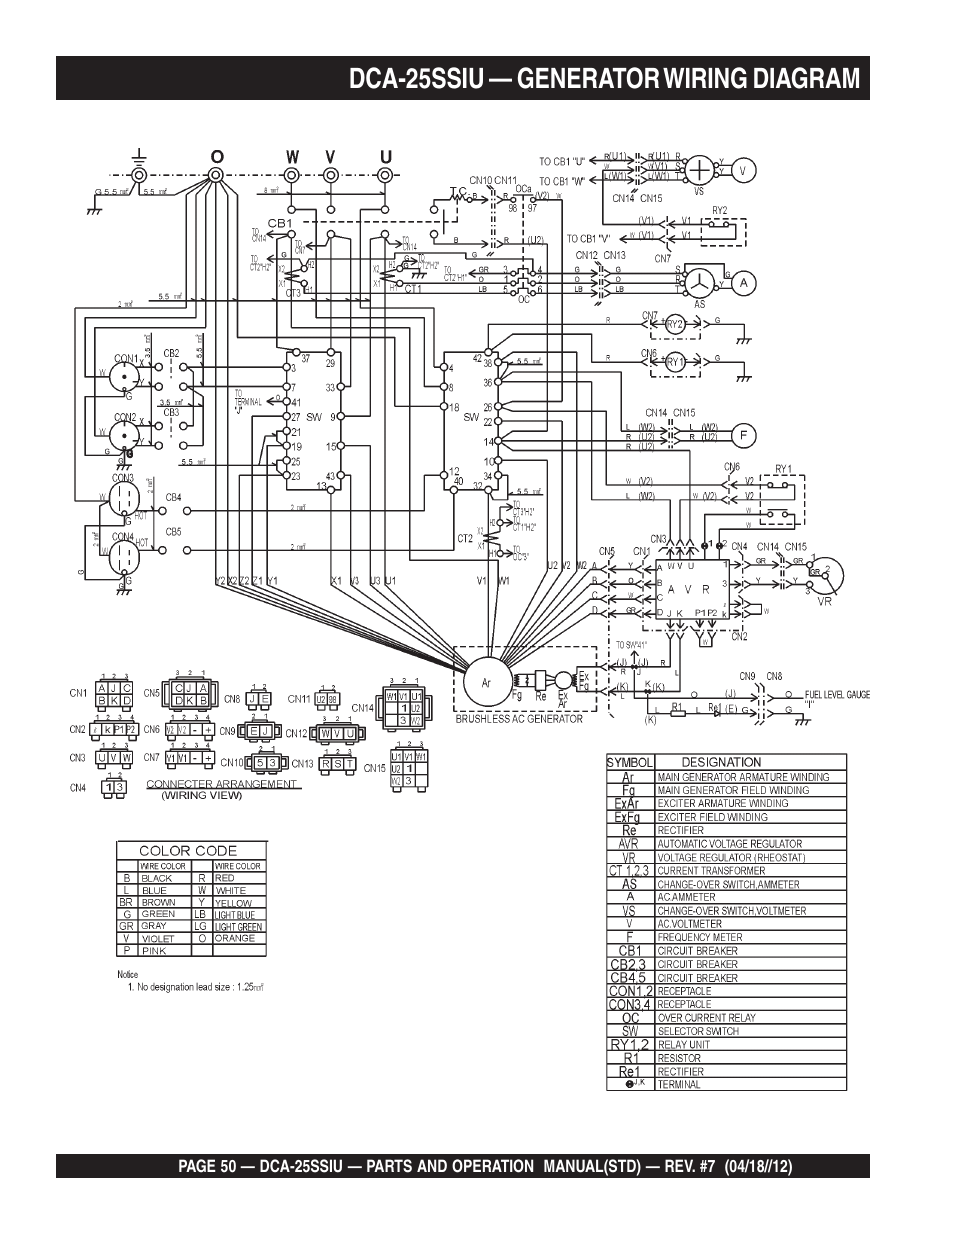 Dca 25ssiu generator wiring diagram multiquip wisperwatt dca 25ssiu generator wiring diagram multiquip wisperwatt generator dca25ssiu user manual page 50 142 asfbconference2016 Images